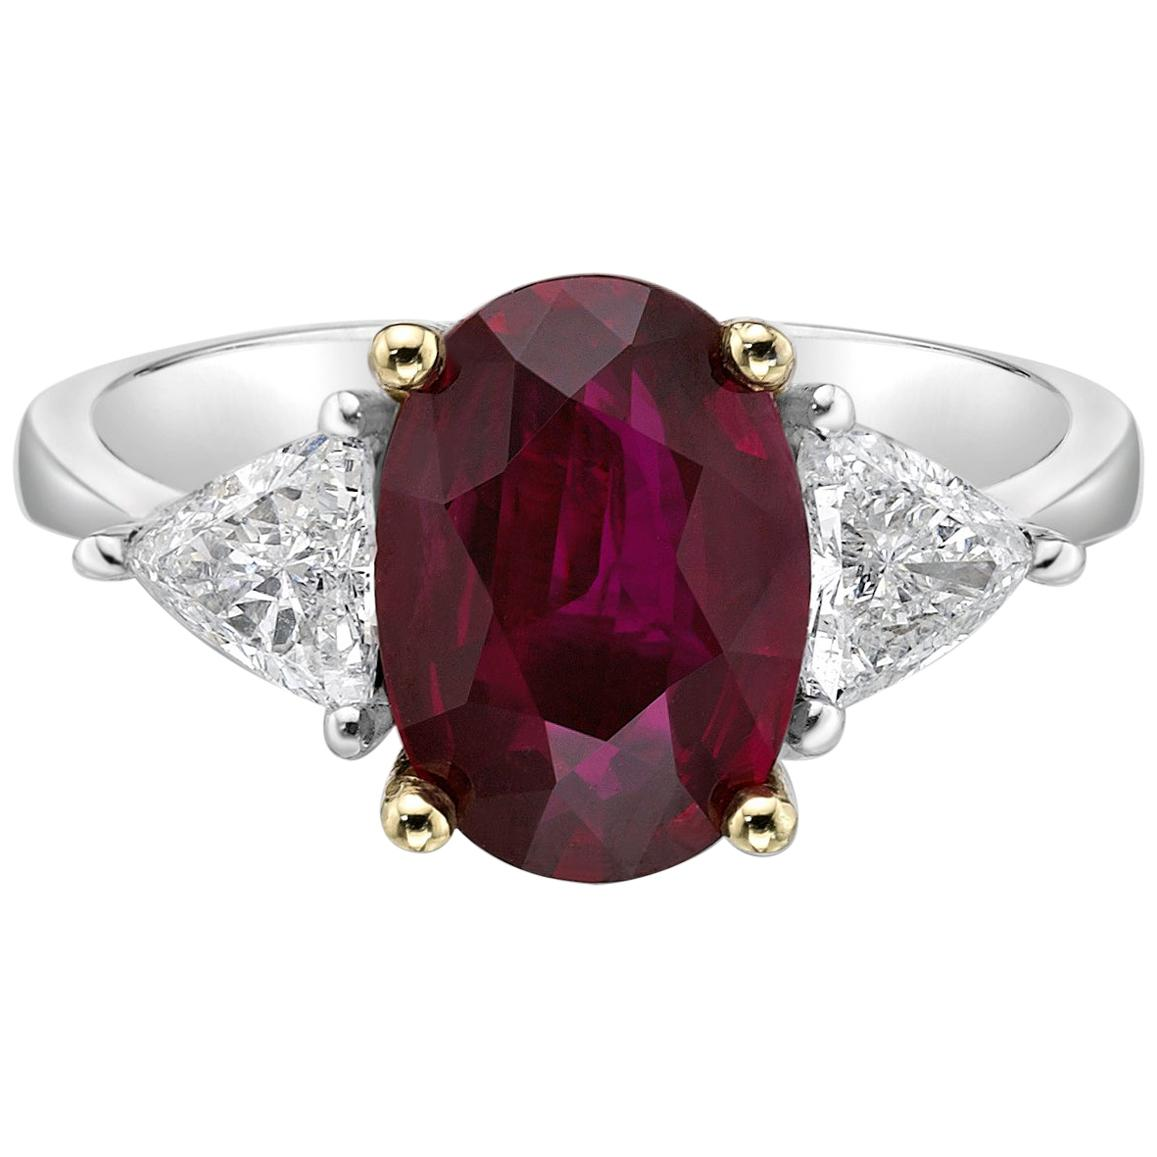 2.83 Carat Ruby GIA Certified Thailand Diamond Ring Oval Cut